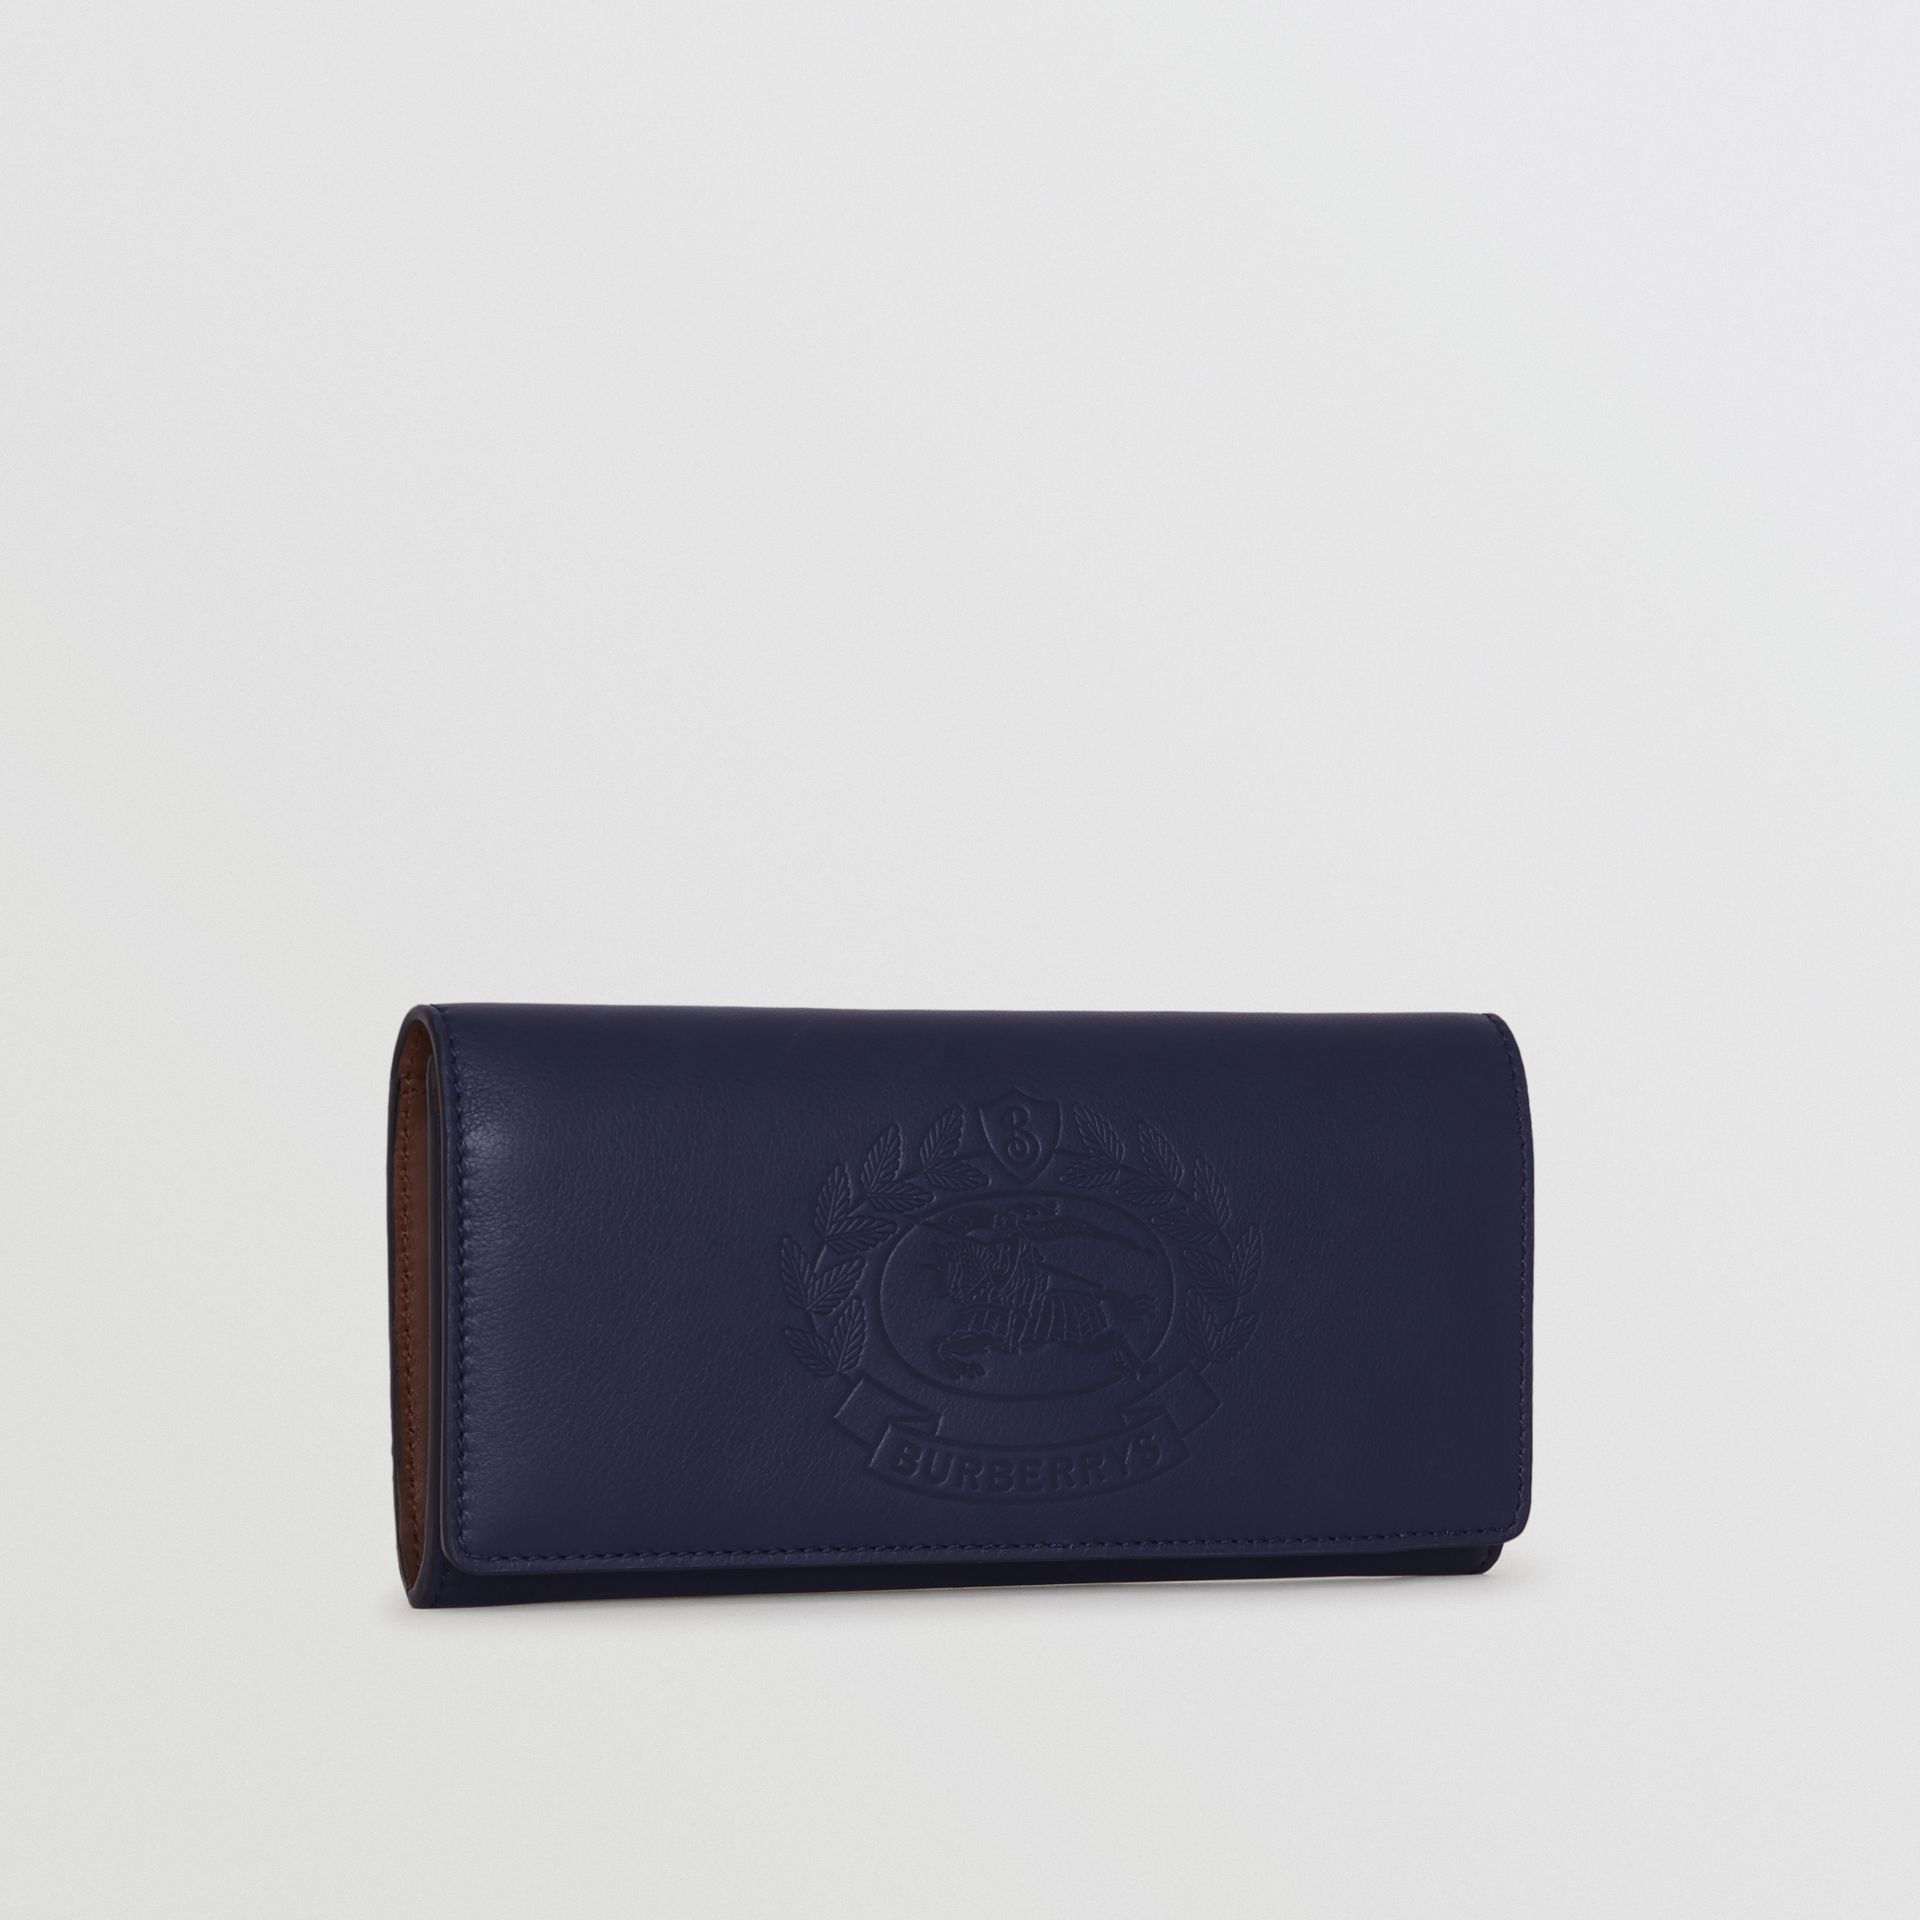 Embossed Crest Two-tone Leather Continental Wallet in Regency Blue - Women | Burberry - gallery image 3